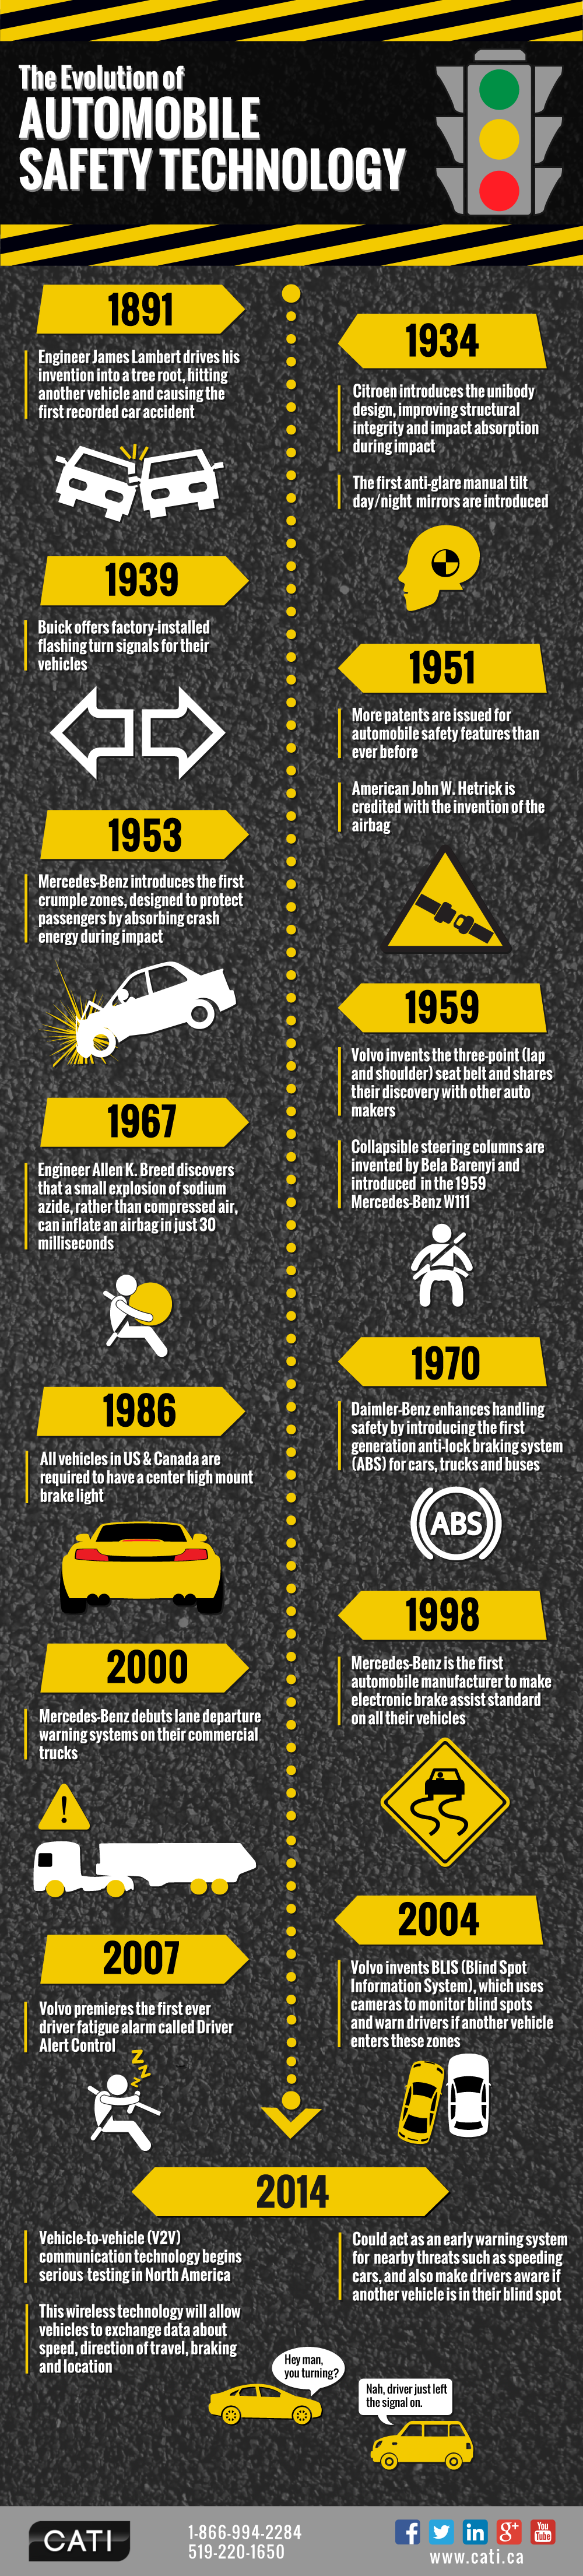 Infographic: The Evolution of Automobile Safety Technology